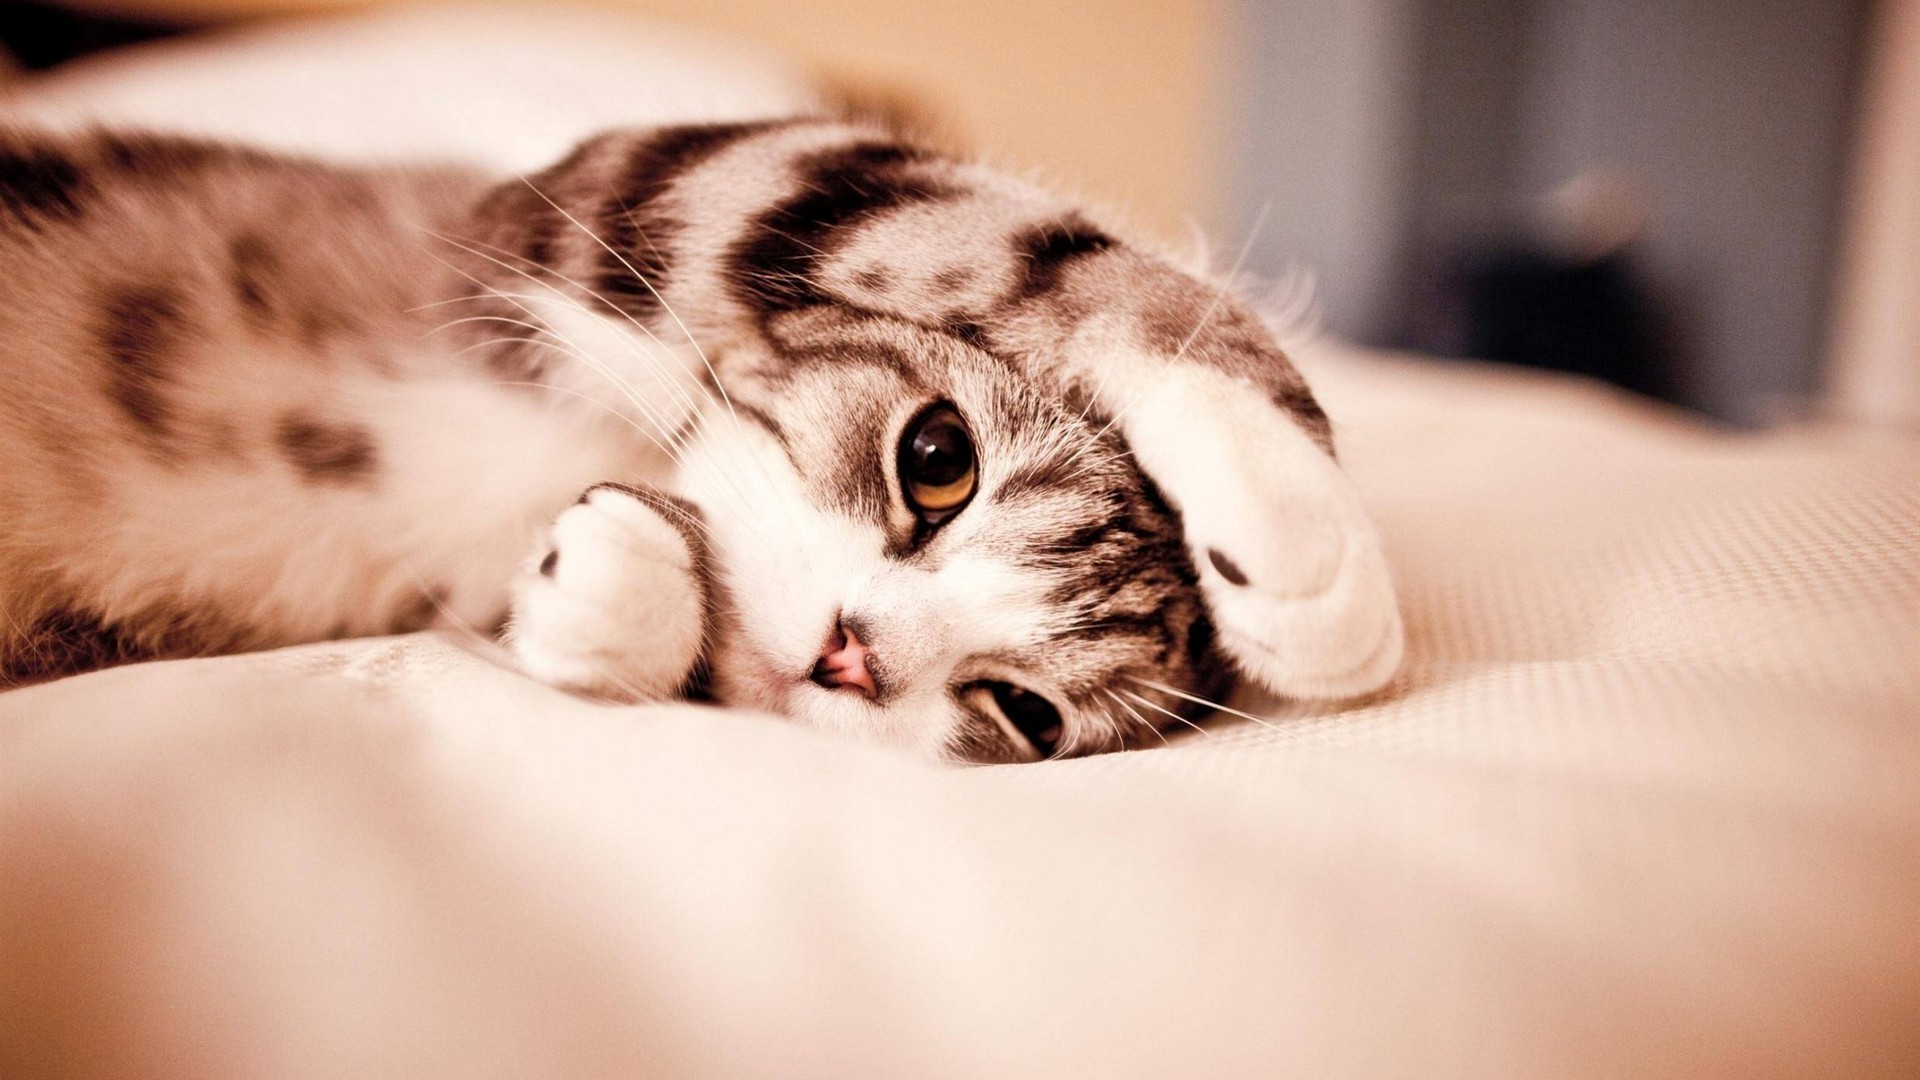 Cute Cat Wallpaper HD 2021 Cute Wallpapers 1920x1080